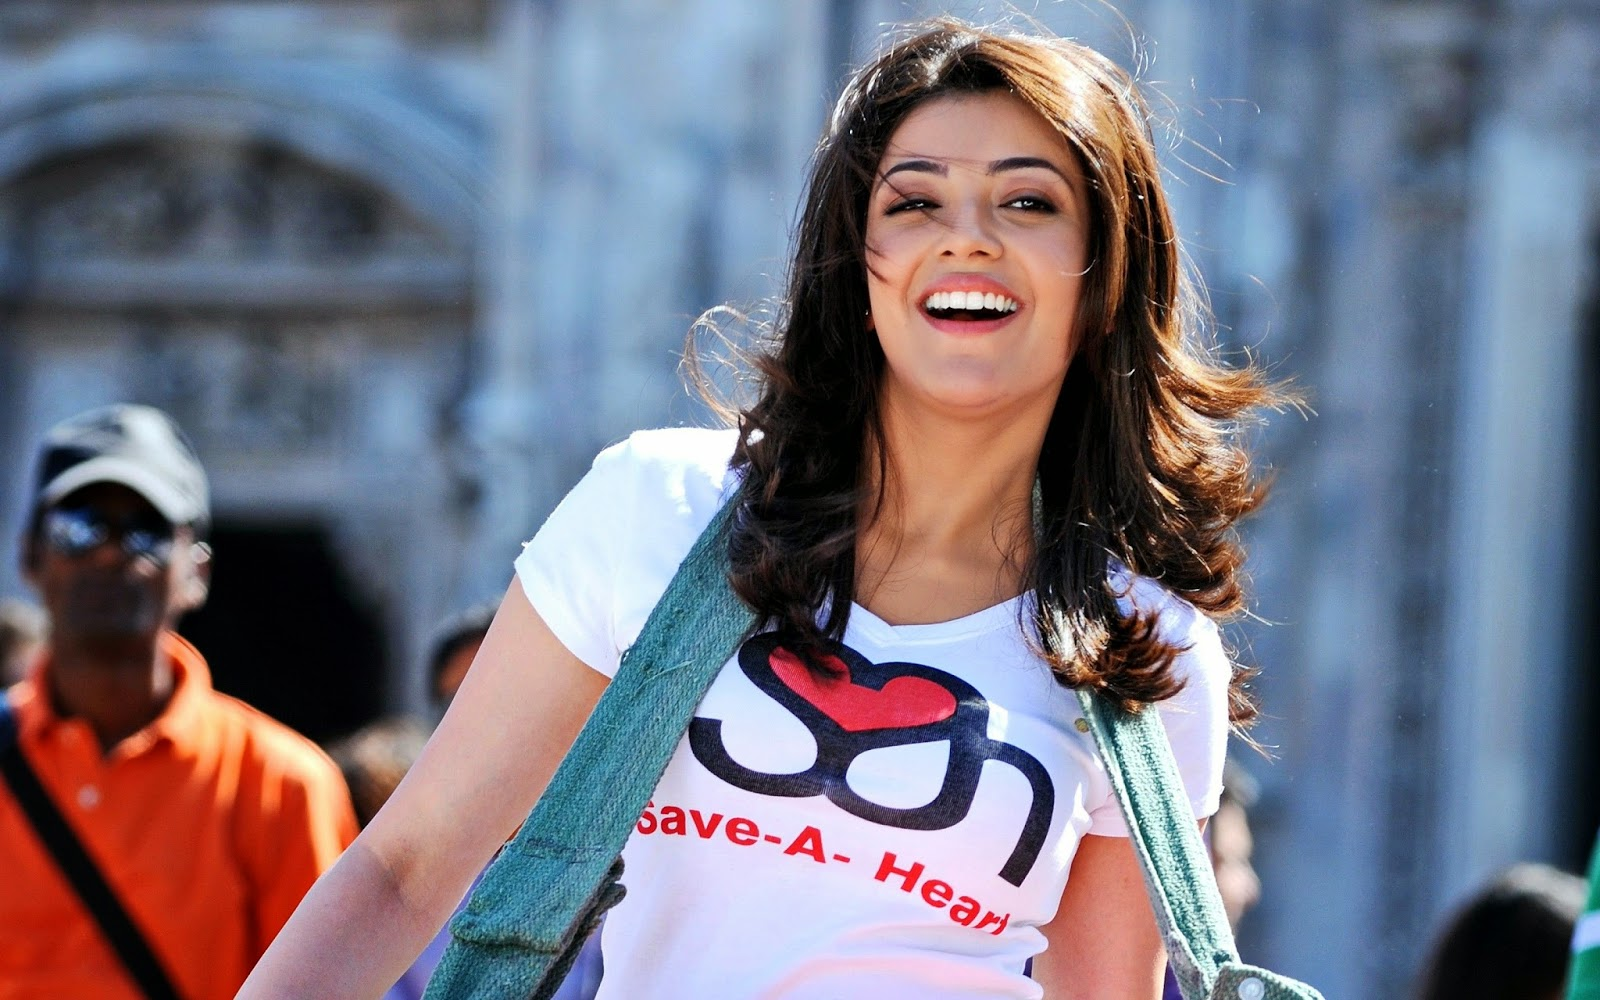 Kajal Aggarwal Upcoming Movies List 2020, 2021 & Release Dates, Actor, Star Cast